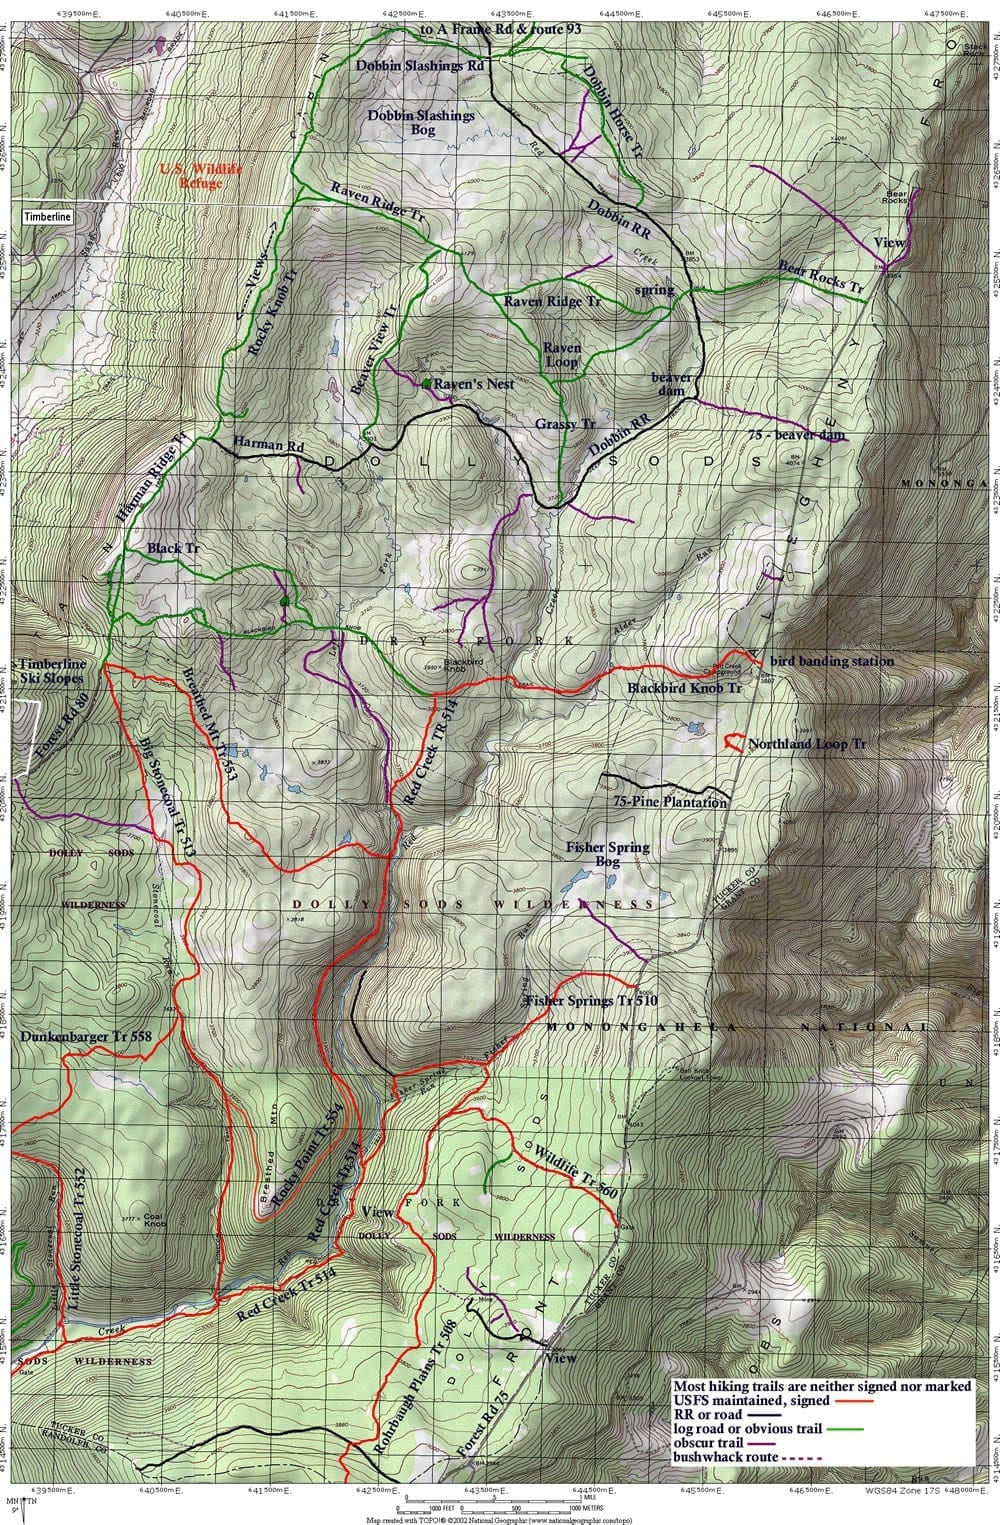 Trail Guide & Maps - White Gr Ski Touring Center on otter creek wilderness area map, blackwater falls state park map, boston metro map, spruce knob, otter creek wilderness, laurel fork north wilderness, canaan valley national wildlife refuge, roaring plains west wilderness, smoke hole caverns, north fork mountain, bear rocks preserve, fairfax stone, oberg mountain trail map, smoke hole canyon, canaan valley state park map, elk river, wv state parks map, monongahela national forest, cranberry glades botanical area, cranberry glades map, elizabeth furnace map, nature map, taihu lake map, greater puget sound map, george washington national forest map, kumbrabow state forest, mammoth cave map, cathedral state park, superstition wilderness map, spruce knob map, new river gorge map, greater brisbane map, gauley river, seneca rocks, canaan valley resort state park, cranberry wilderness, canaan valley, shenandoah national park map, the plains va map, wulingyuan map,